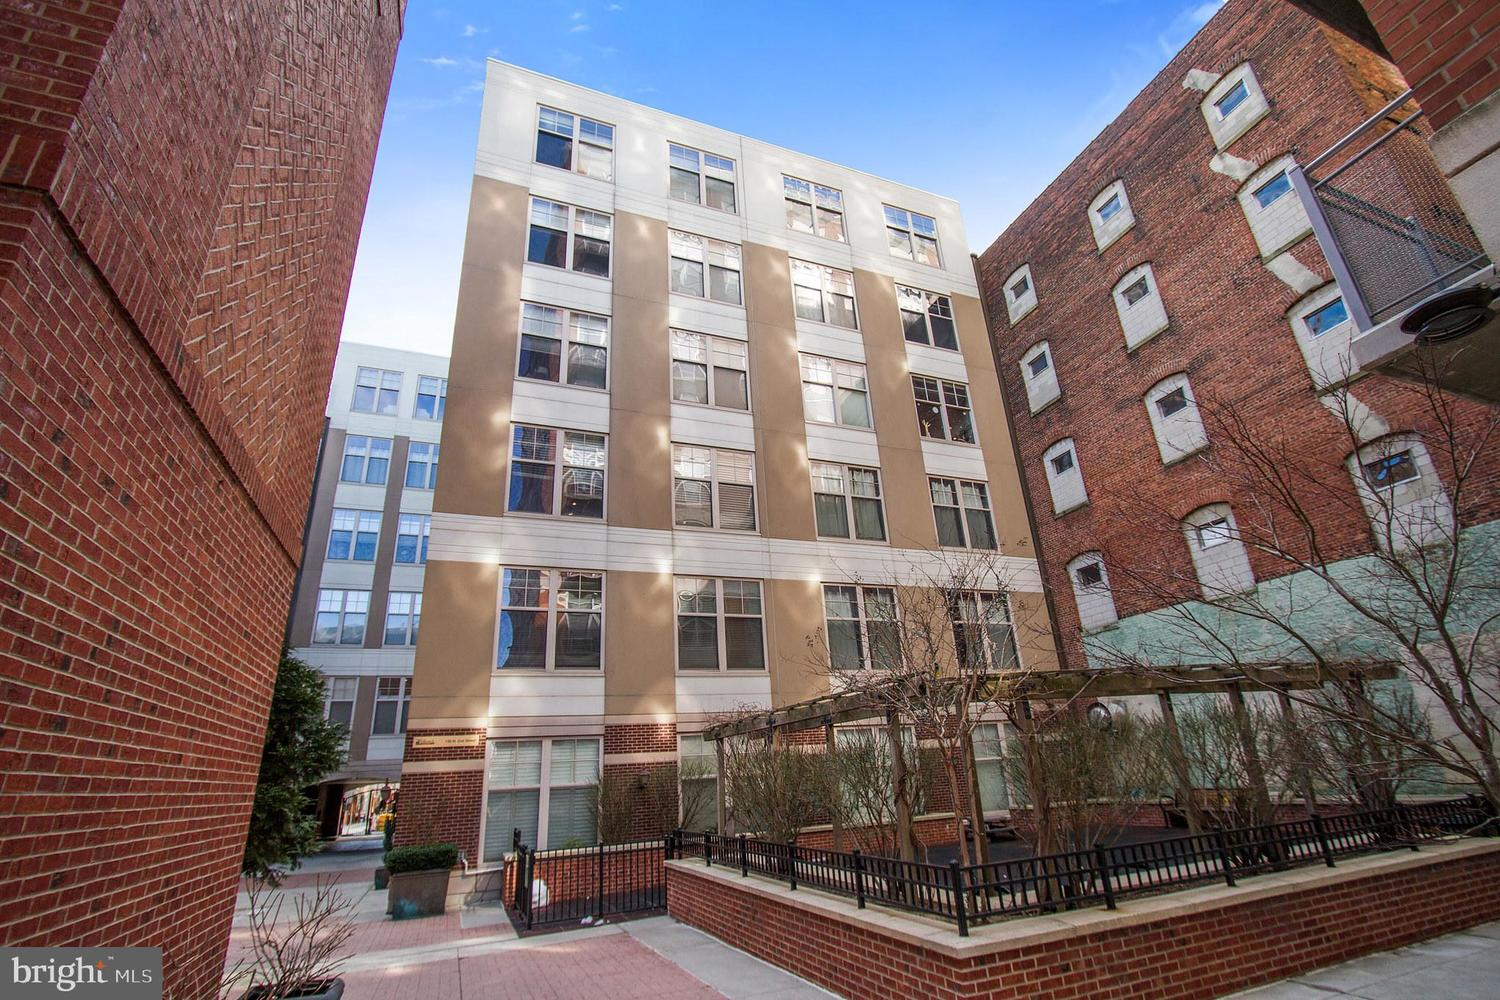 130 North 2nd Street, Unit 6B Philadelphia, PA 19106